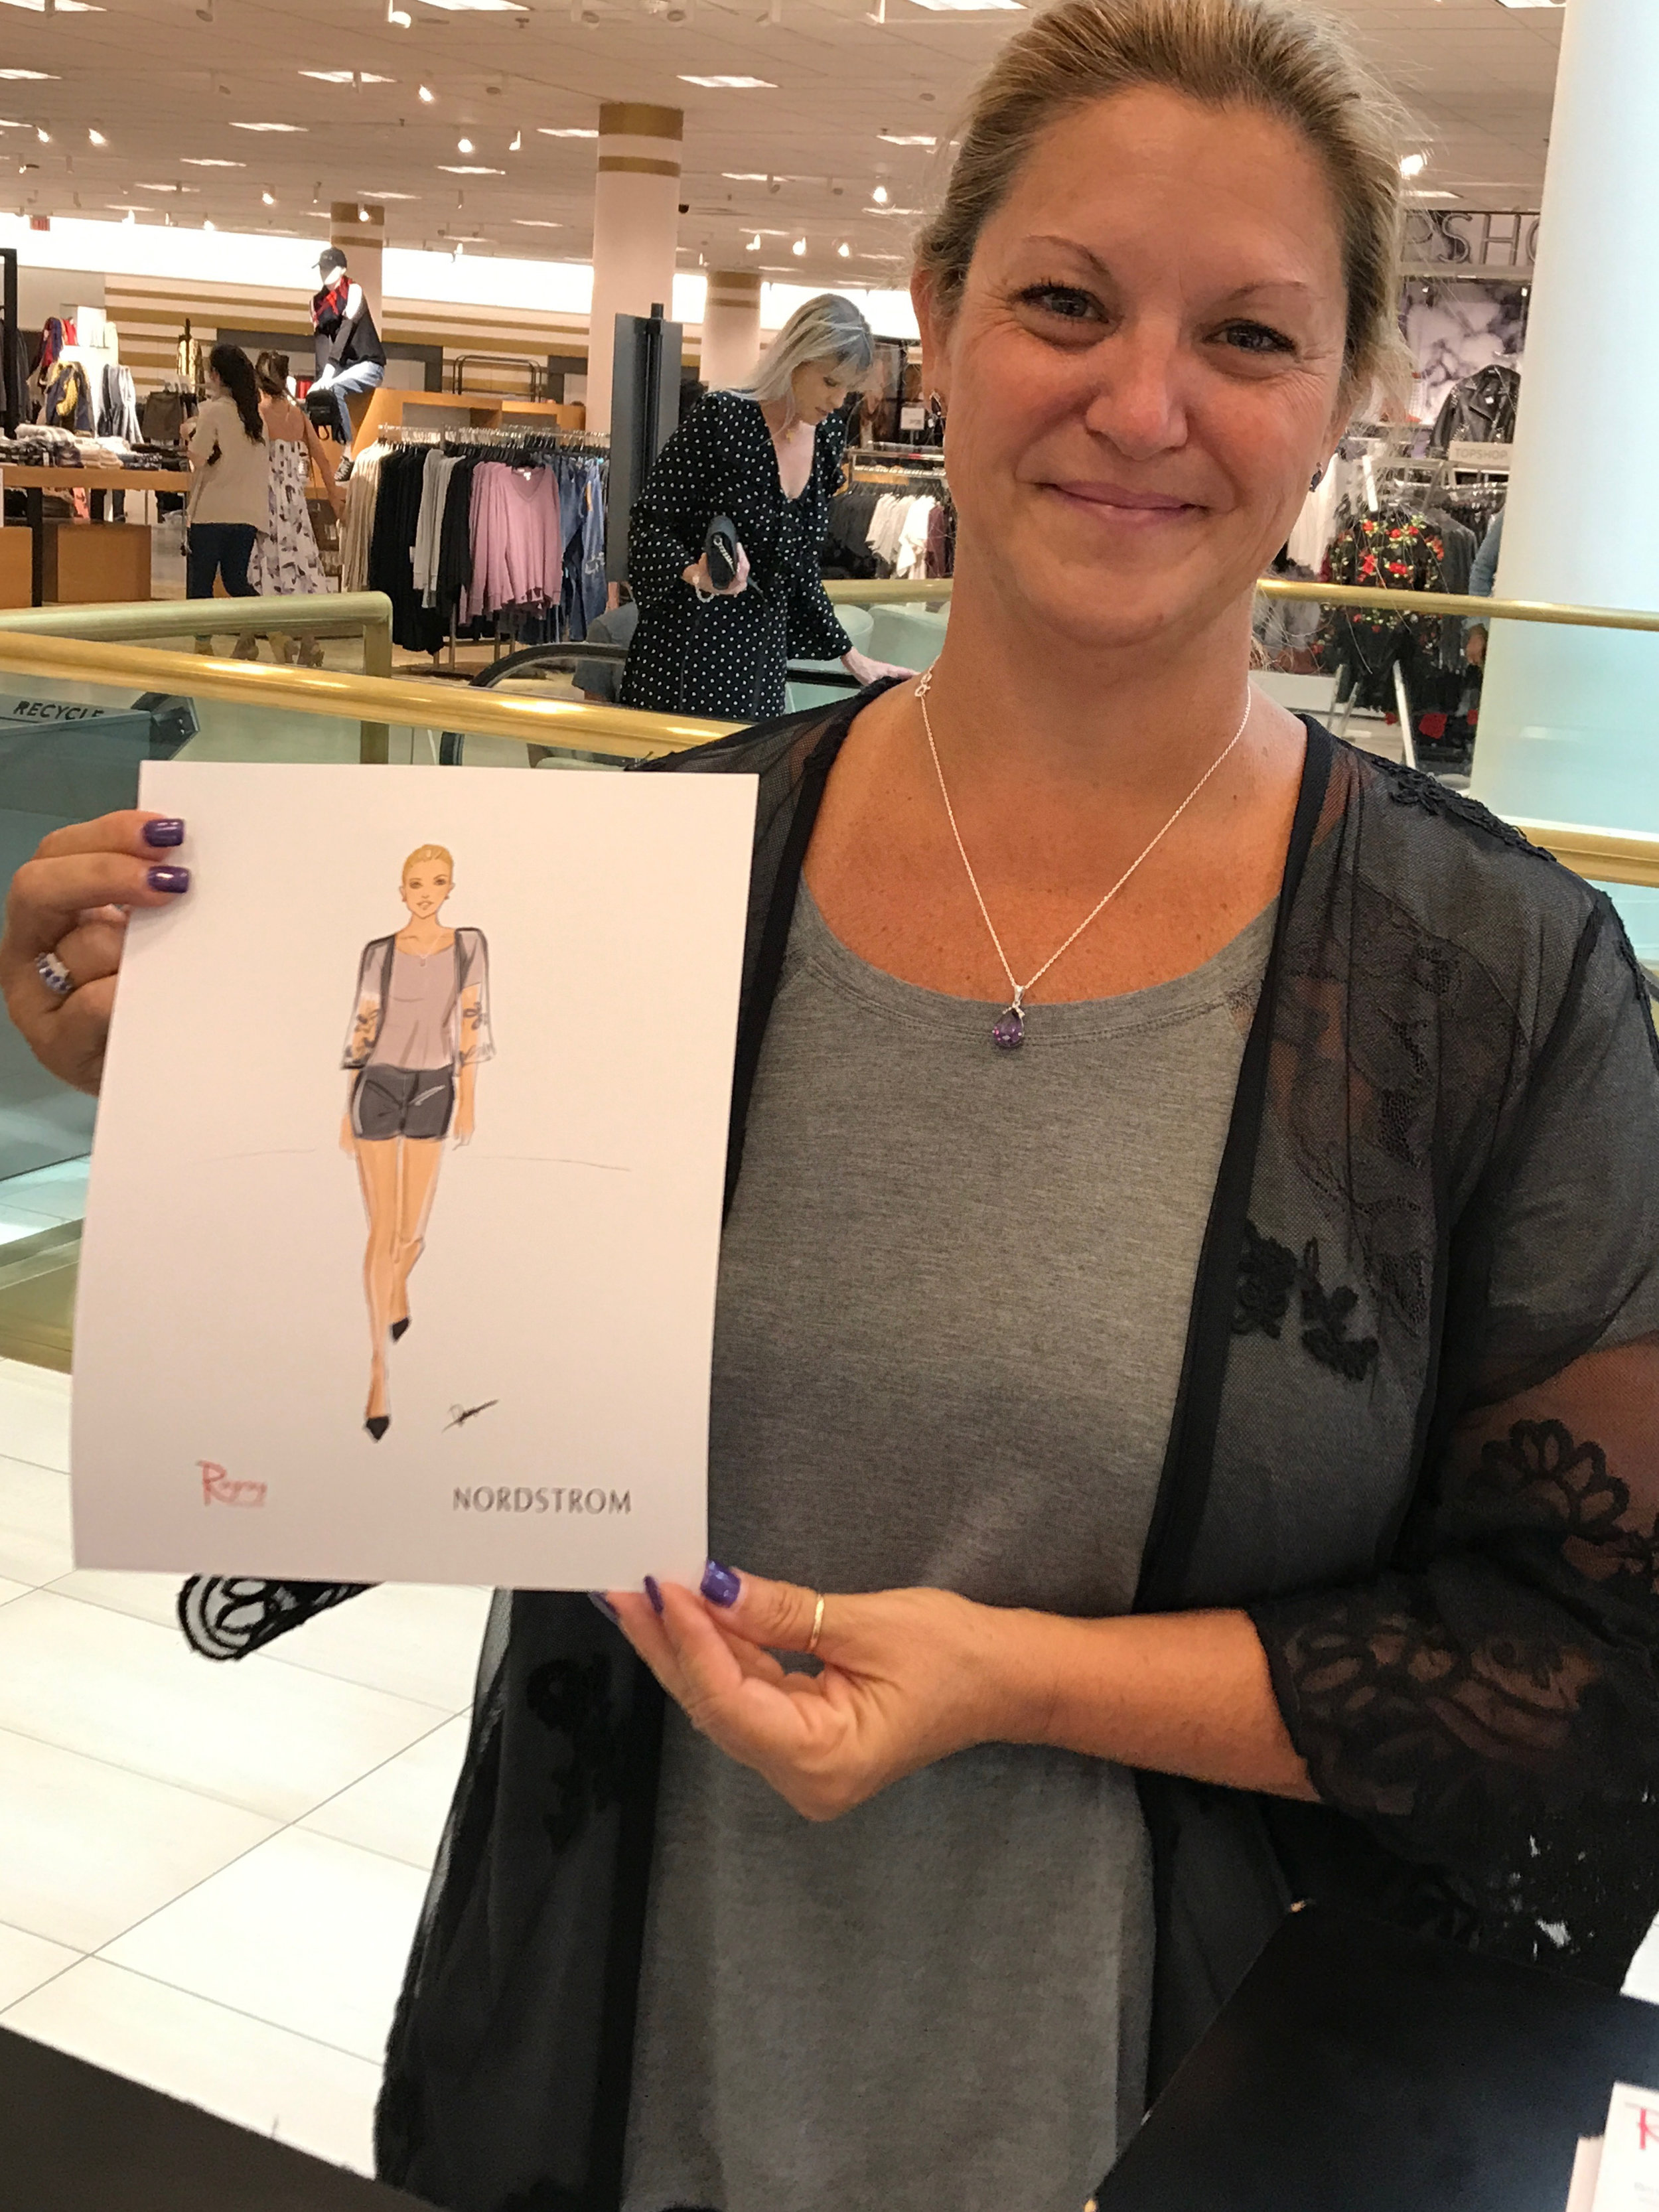 Live fashion sketching at Nordstrom dallas event by Rongrong DeVoe-1.JPG